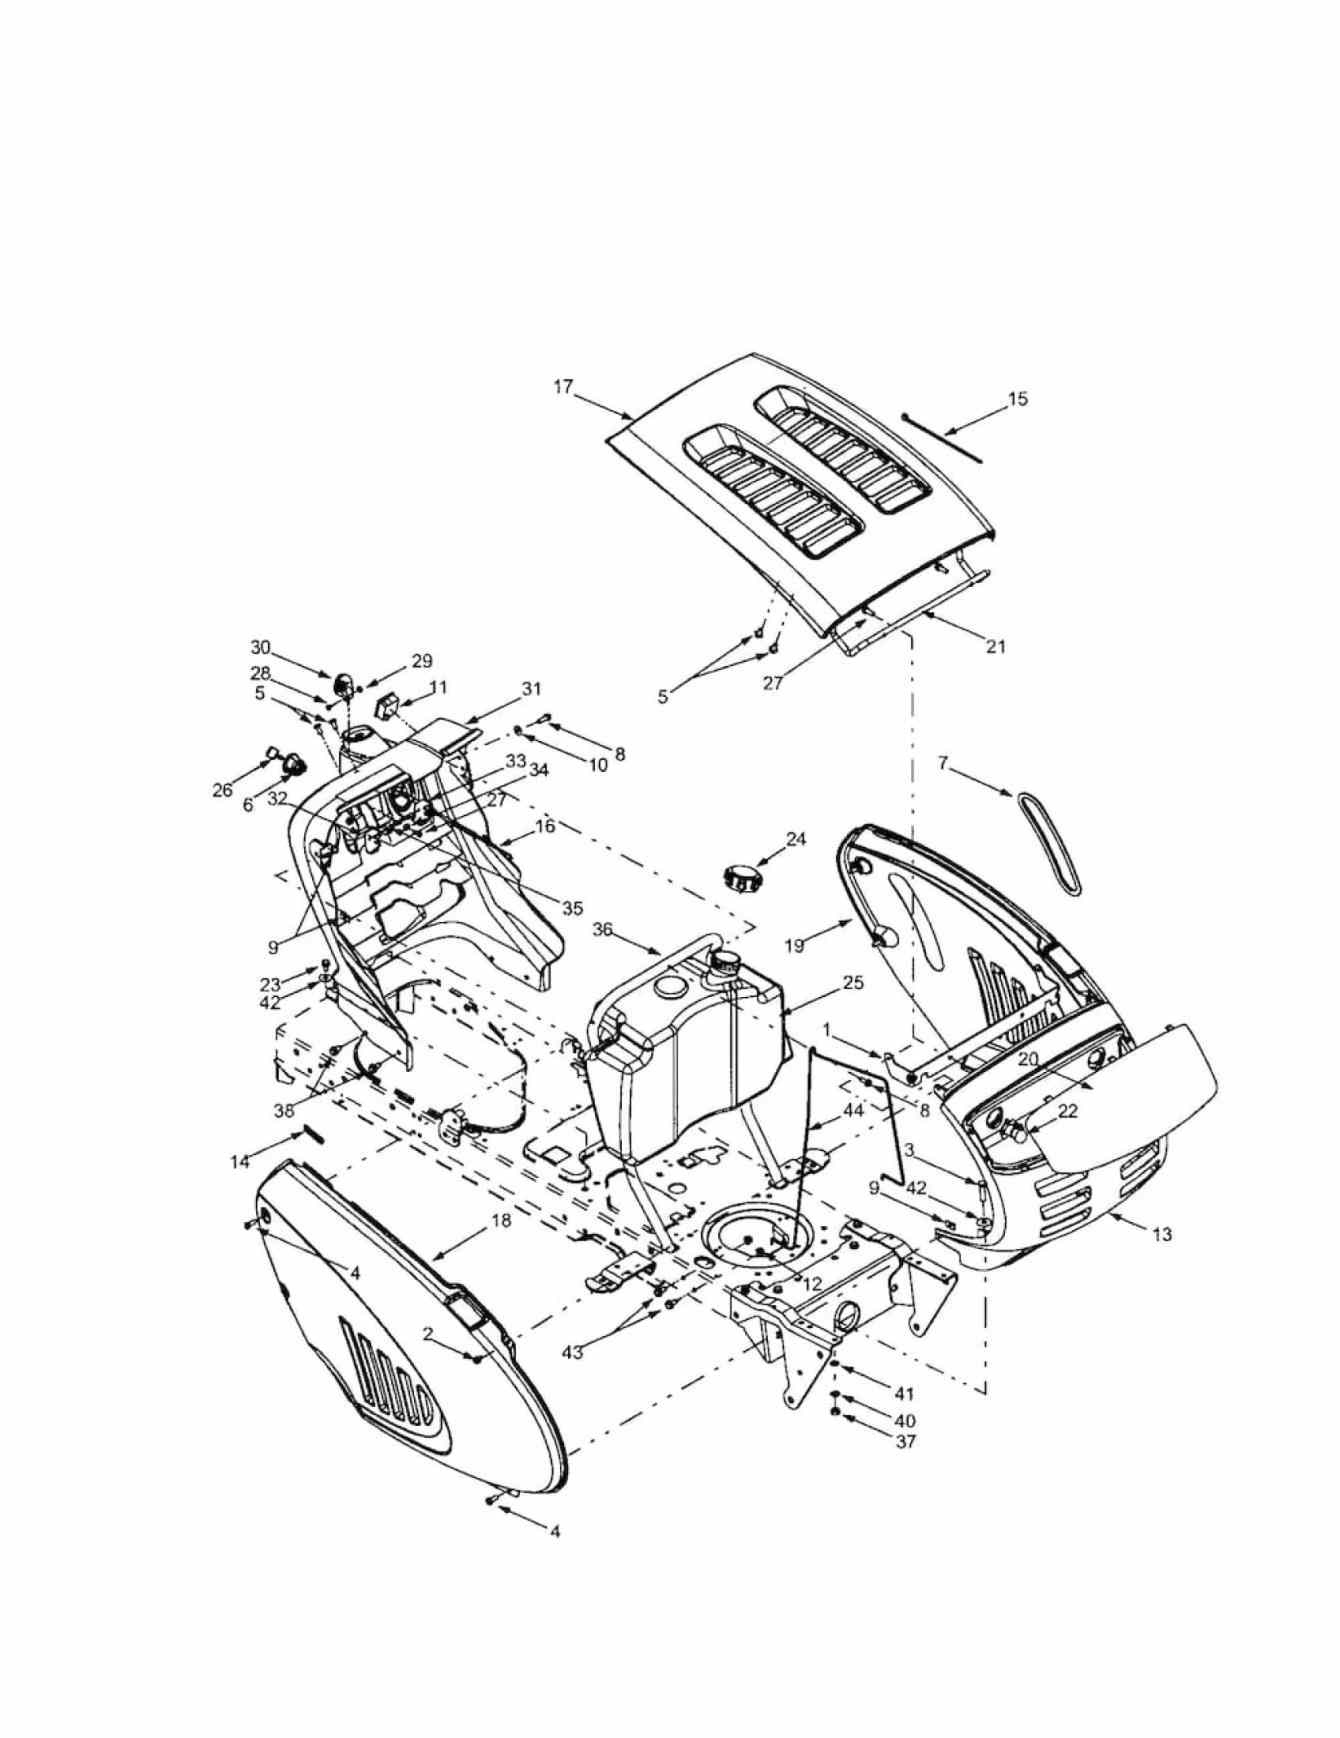 Gm engine parts online together with chevy evap vent solenoid harness further gmc t7500 wiring schematic